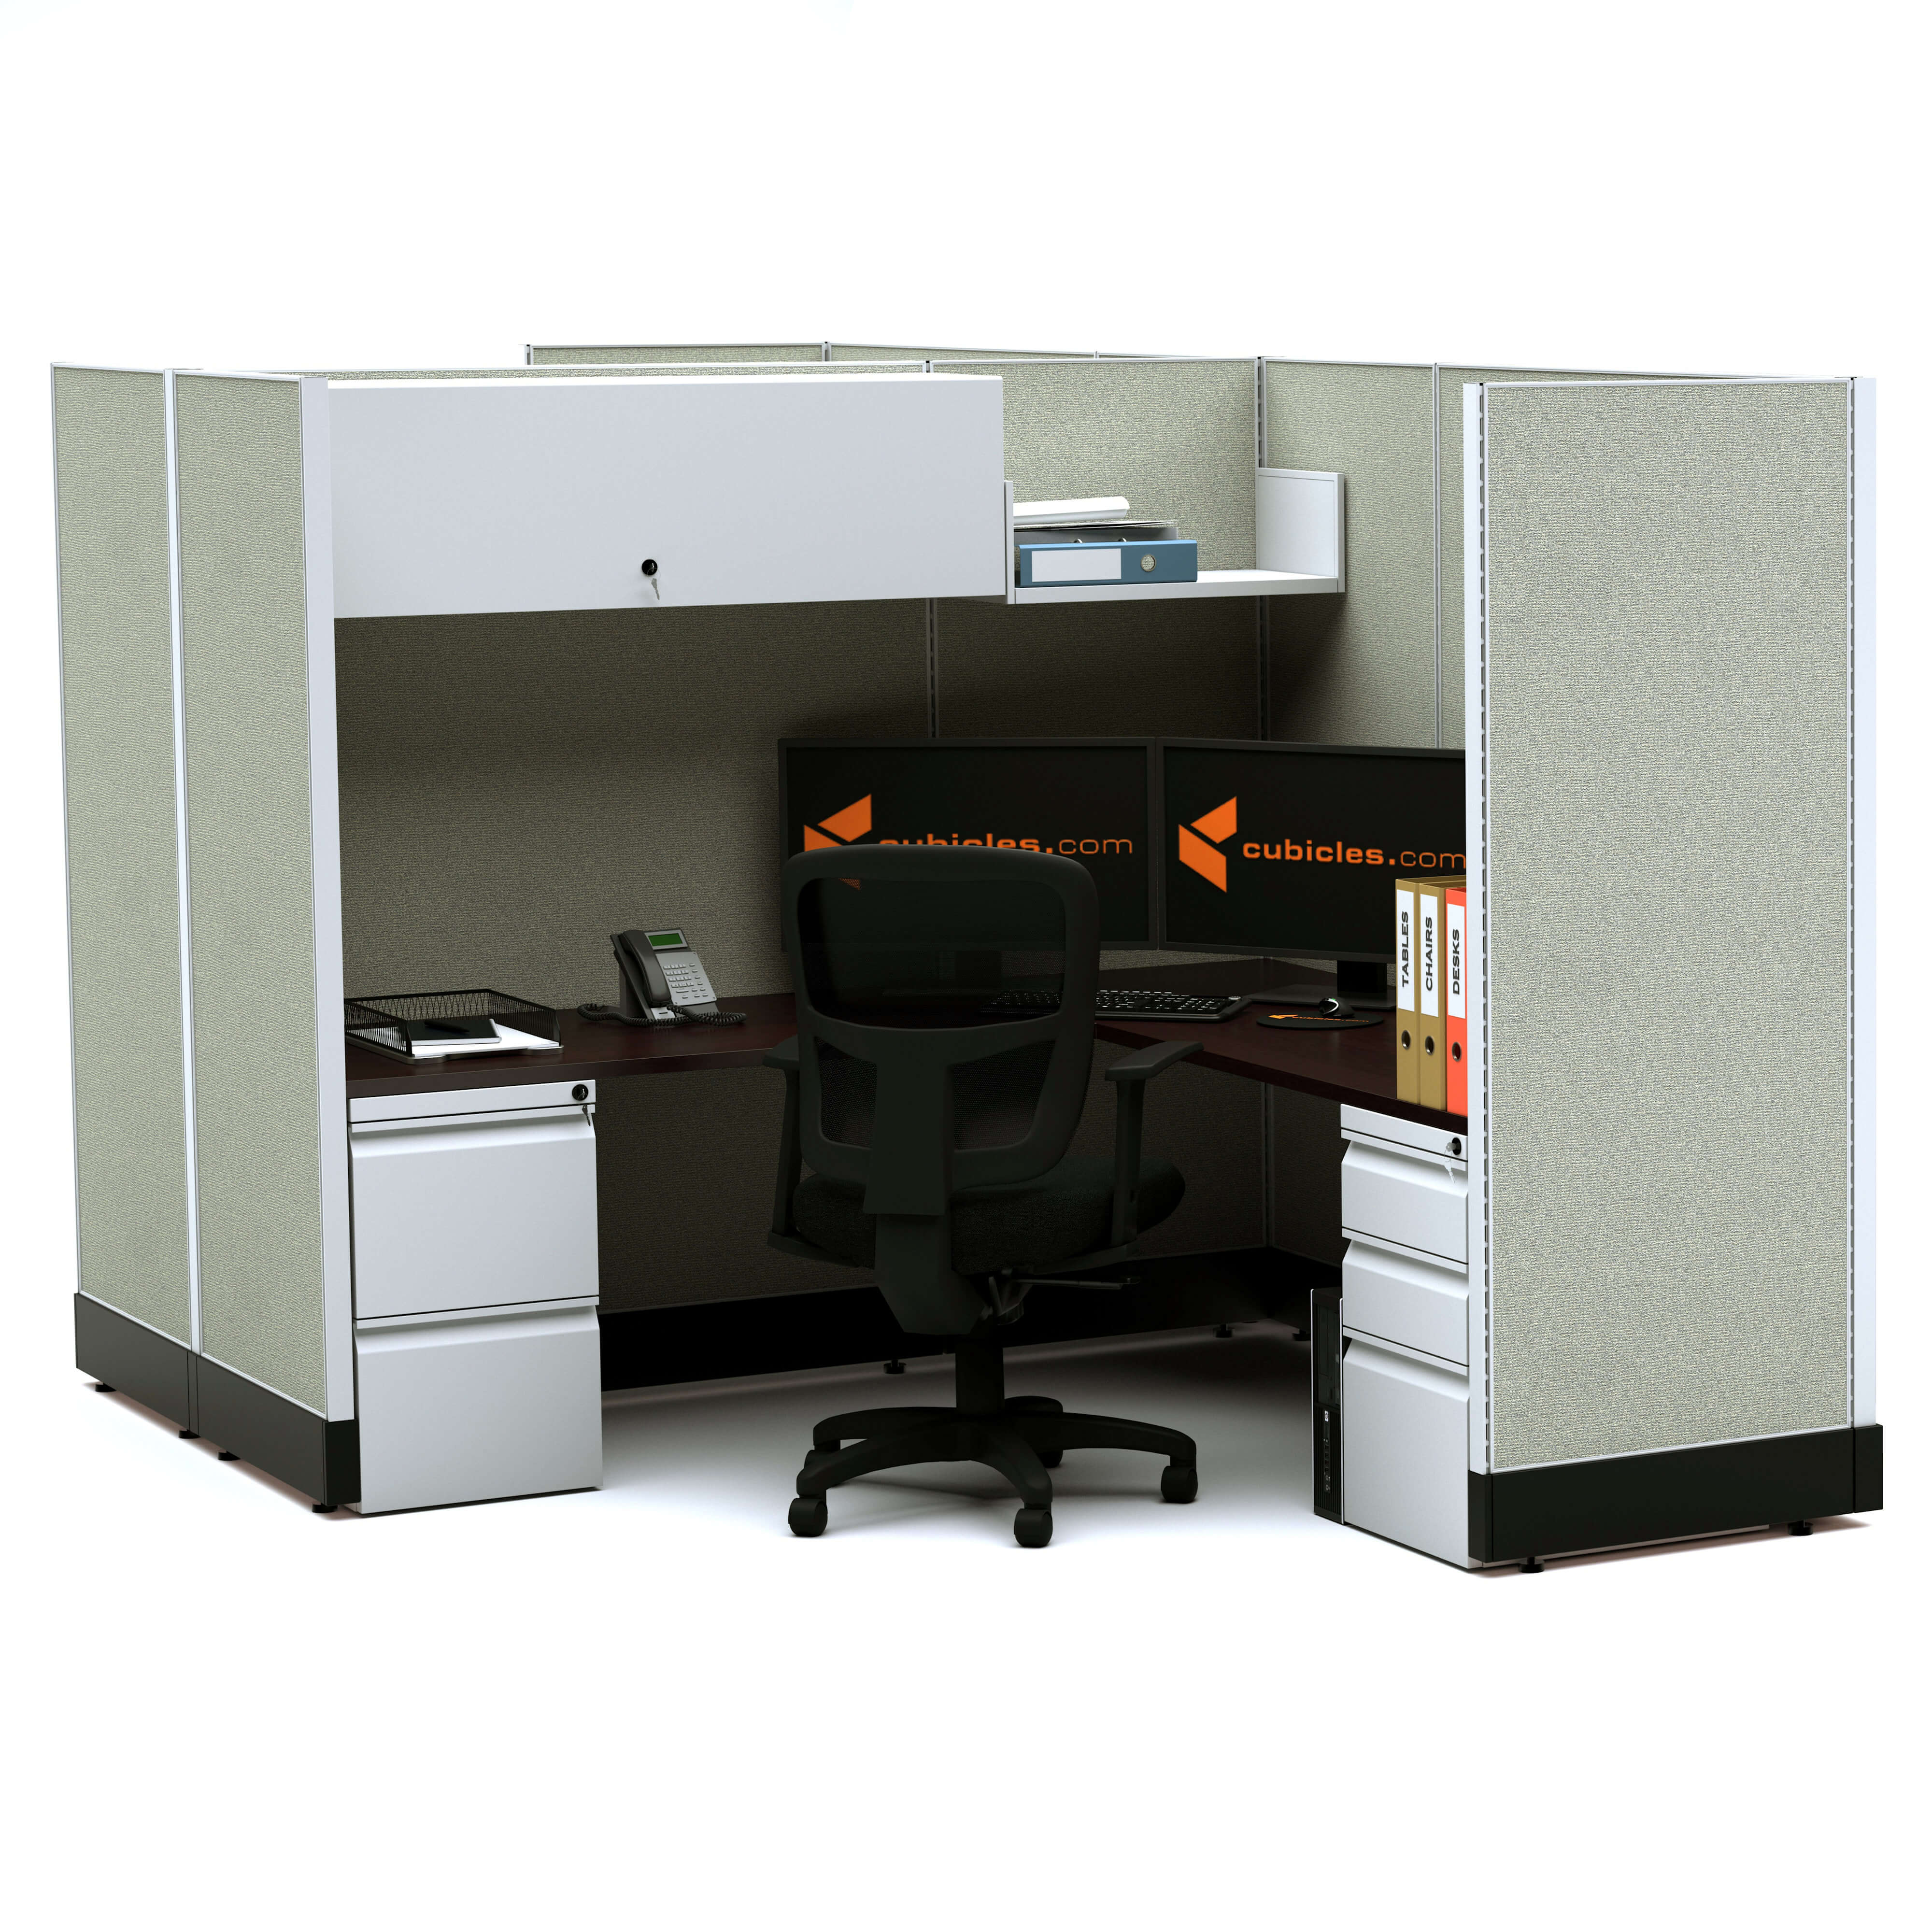 modular-office-furniture-modular-office-desk-furniture-67-2pack-clustered-unpowered.jpg